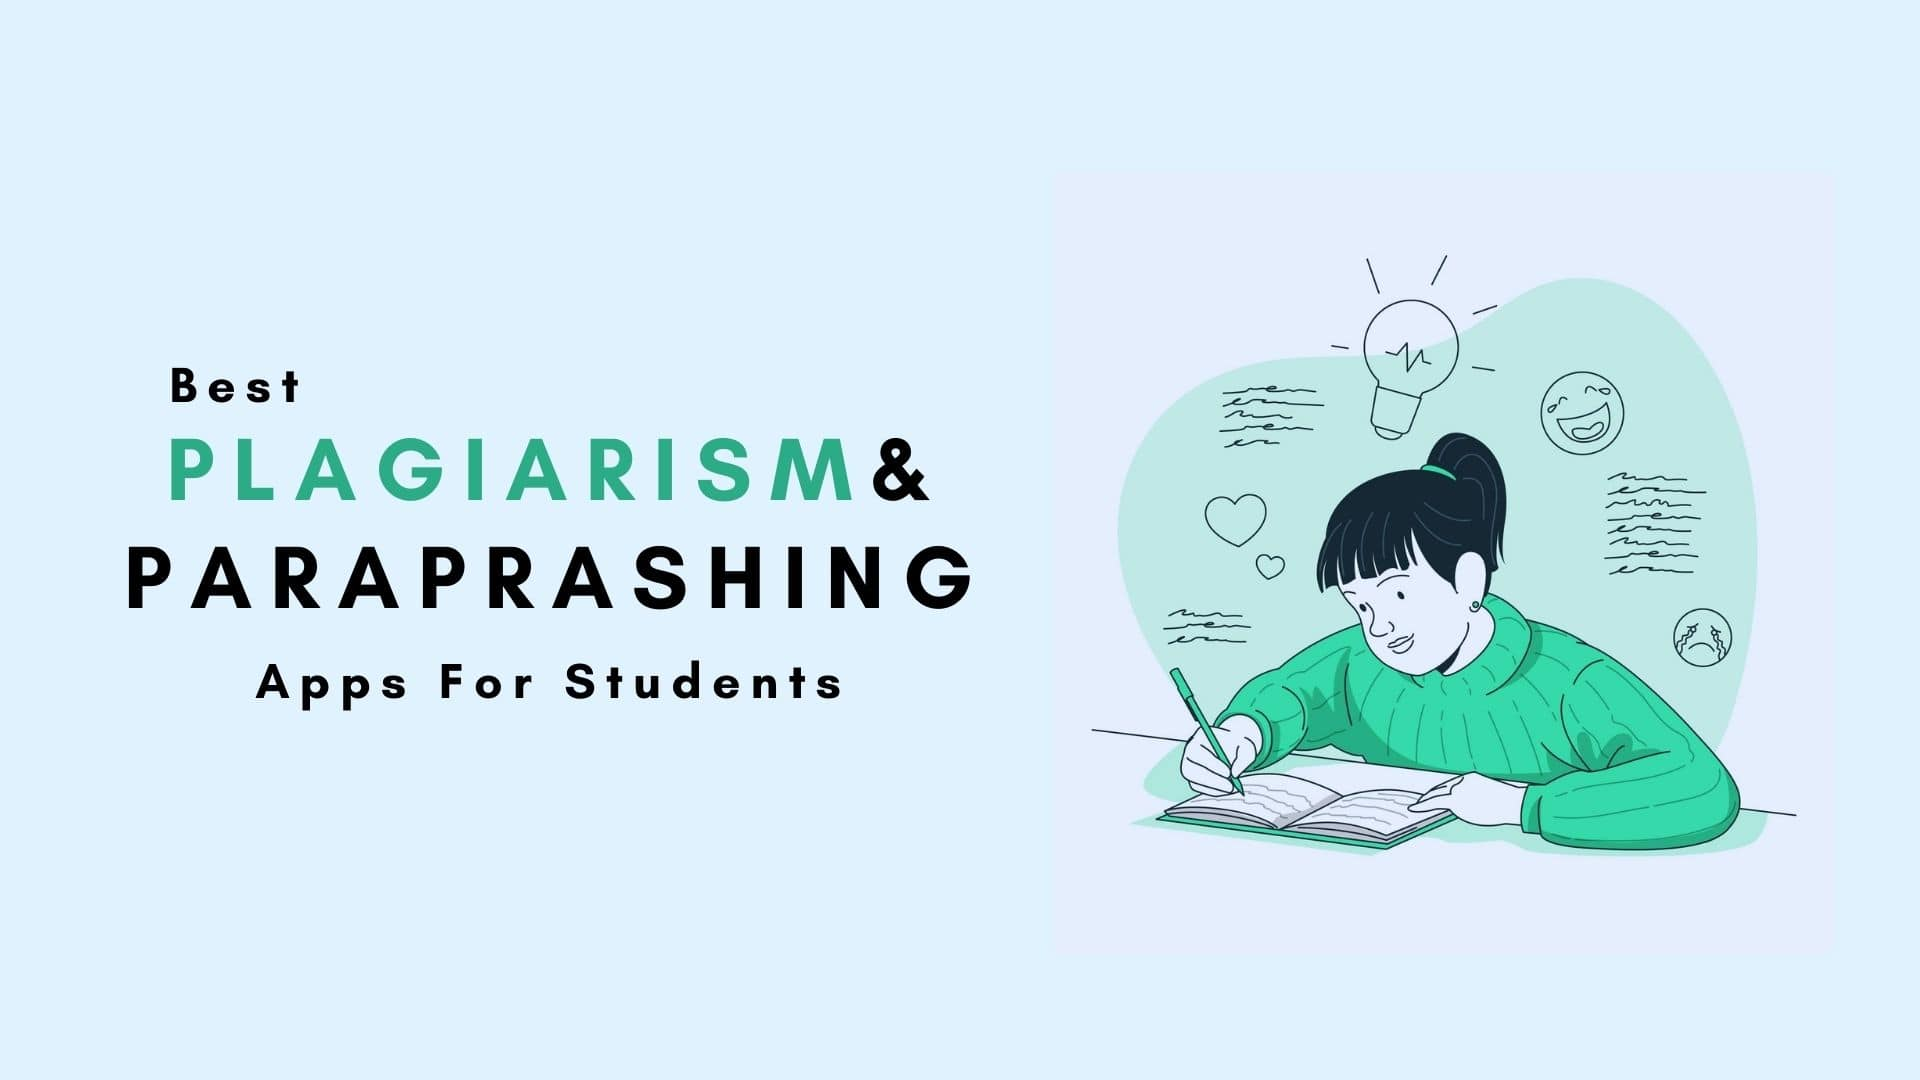 paraphrasing apps for students